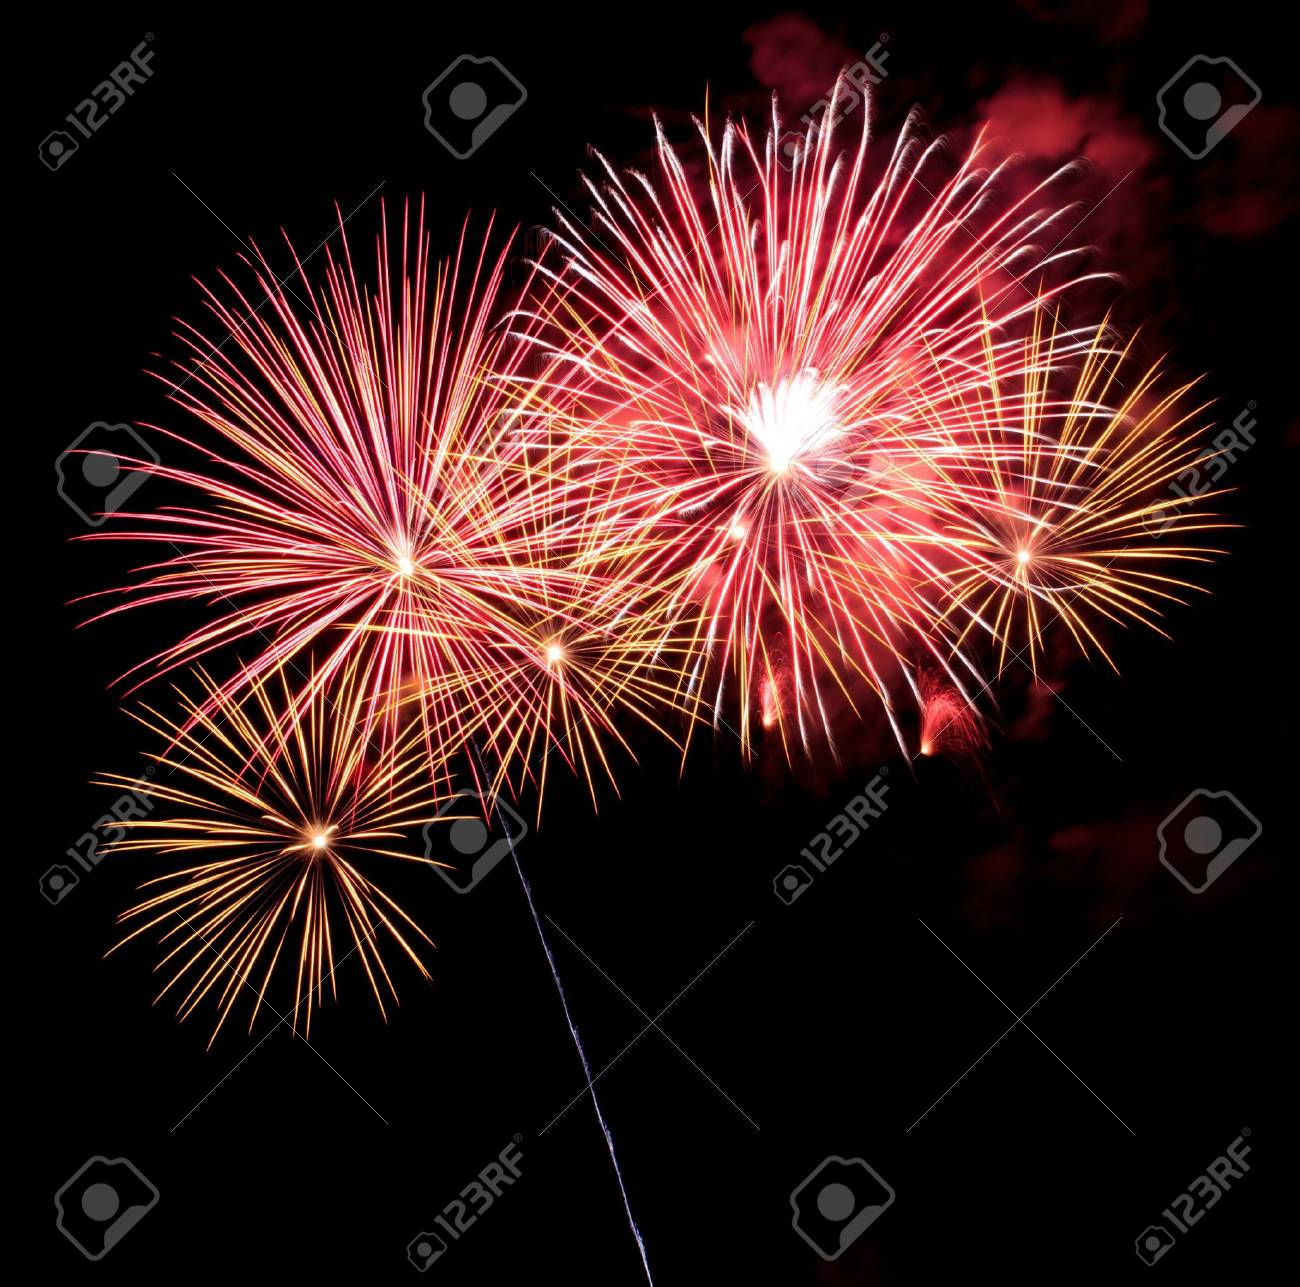 Exposure of multiple fireworks with a black sky. Stock Photo - 19741198